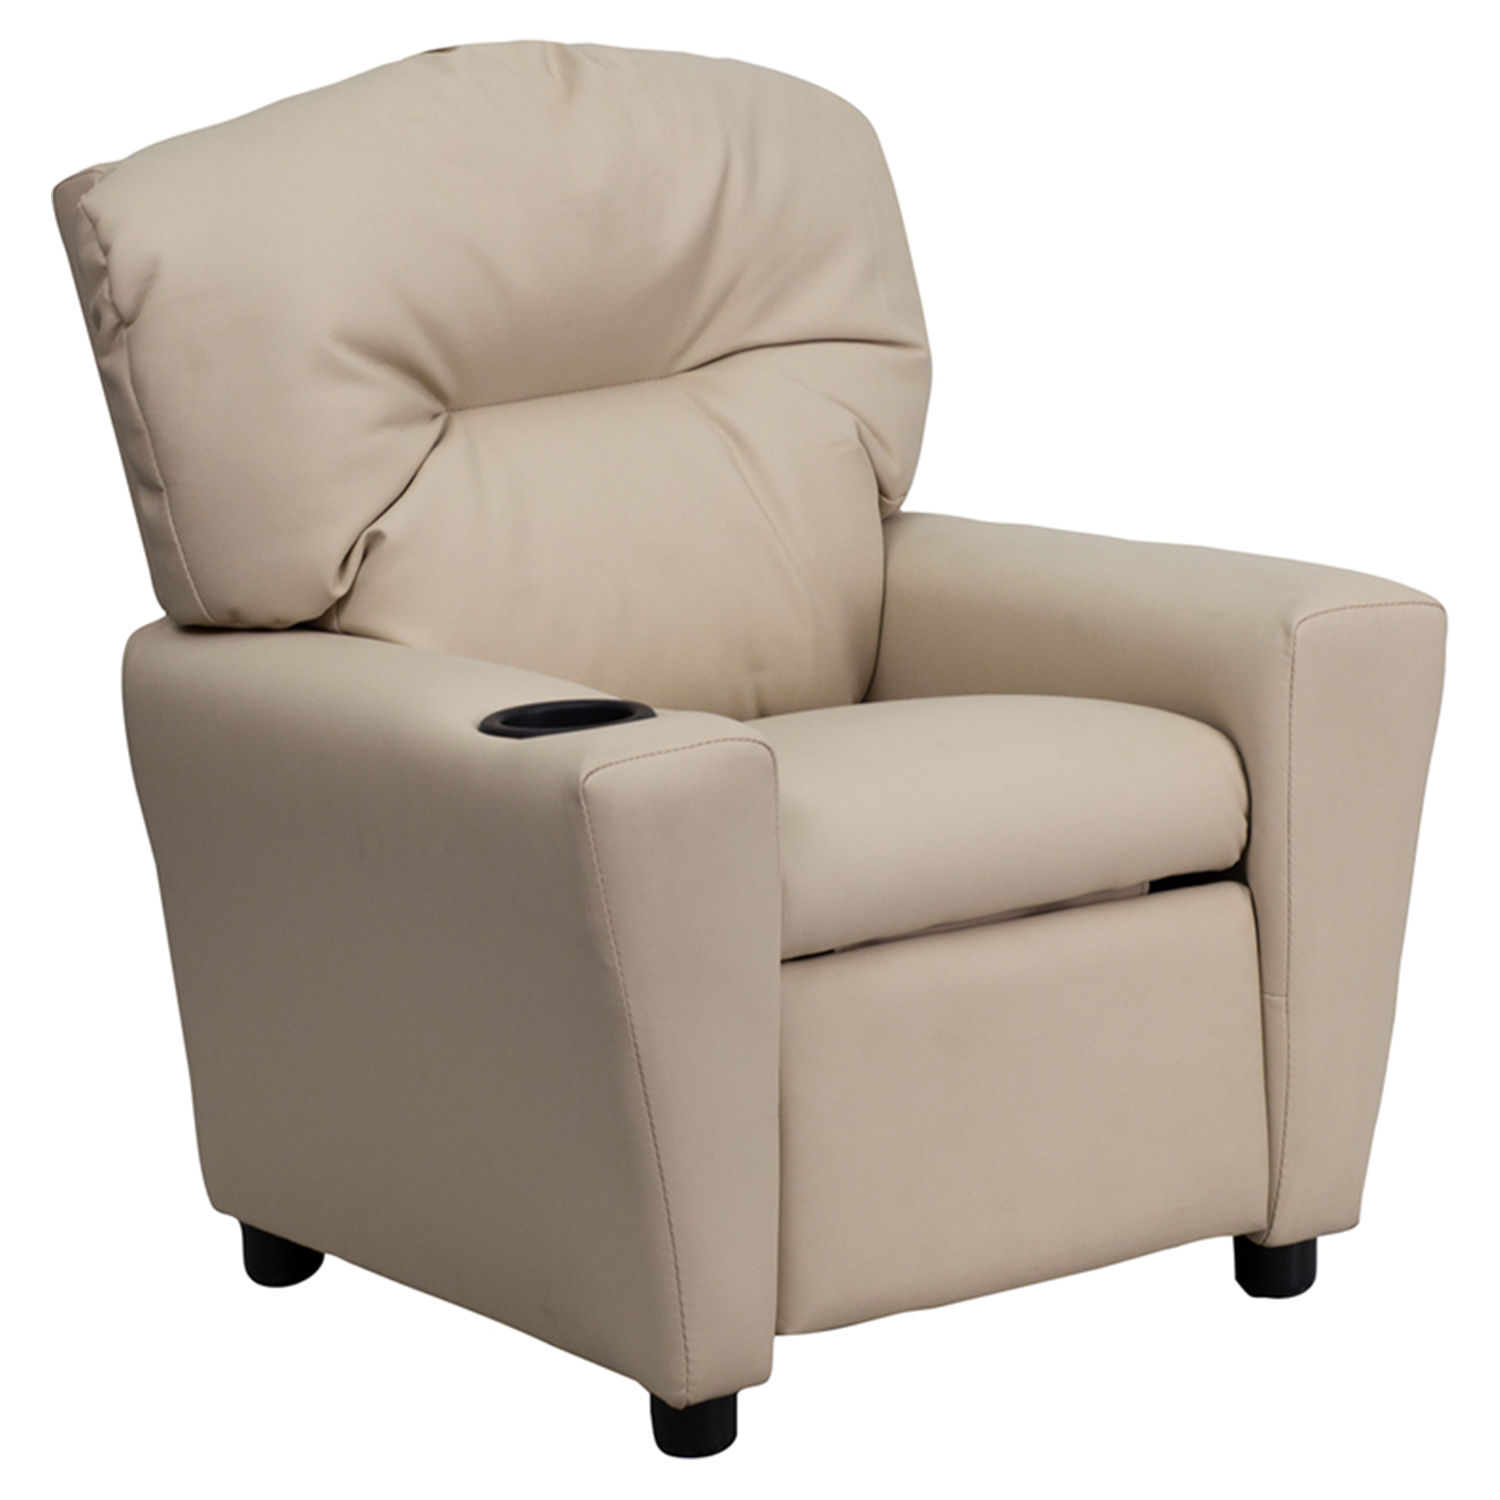 Upholstered Kids Recliner Chair - Cup Holder Beige  sc 1 st  DCG Stores & Kids Upholstered Chairs | DCG Stores